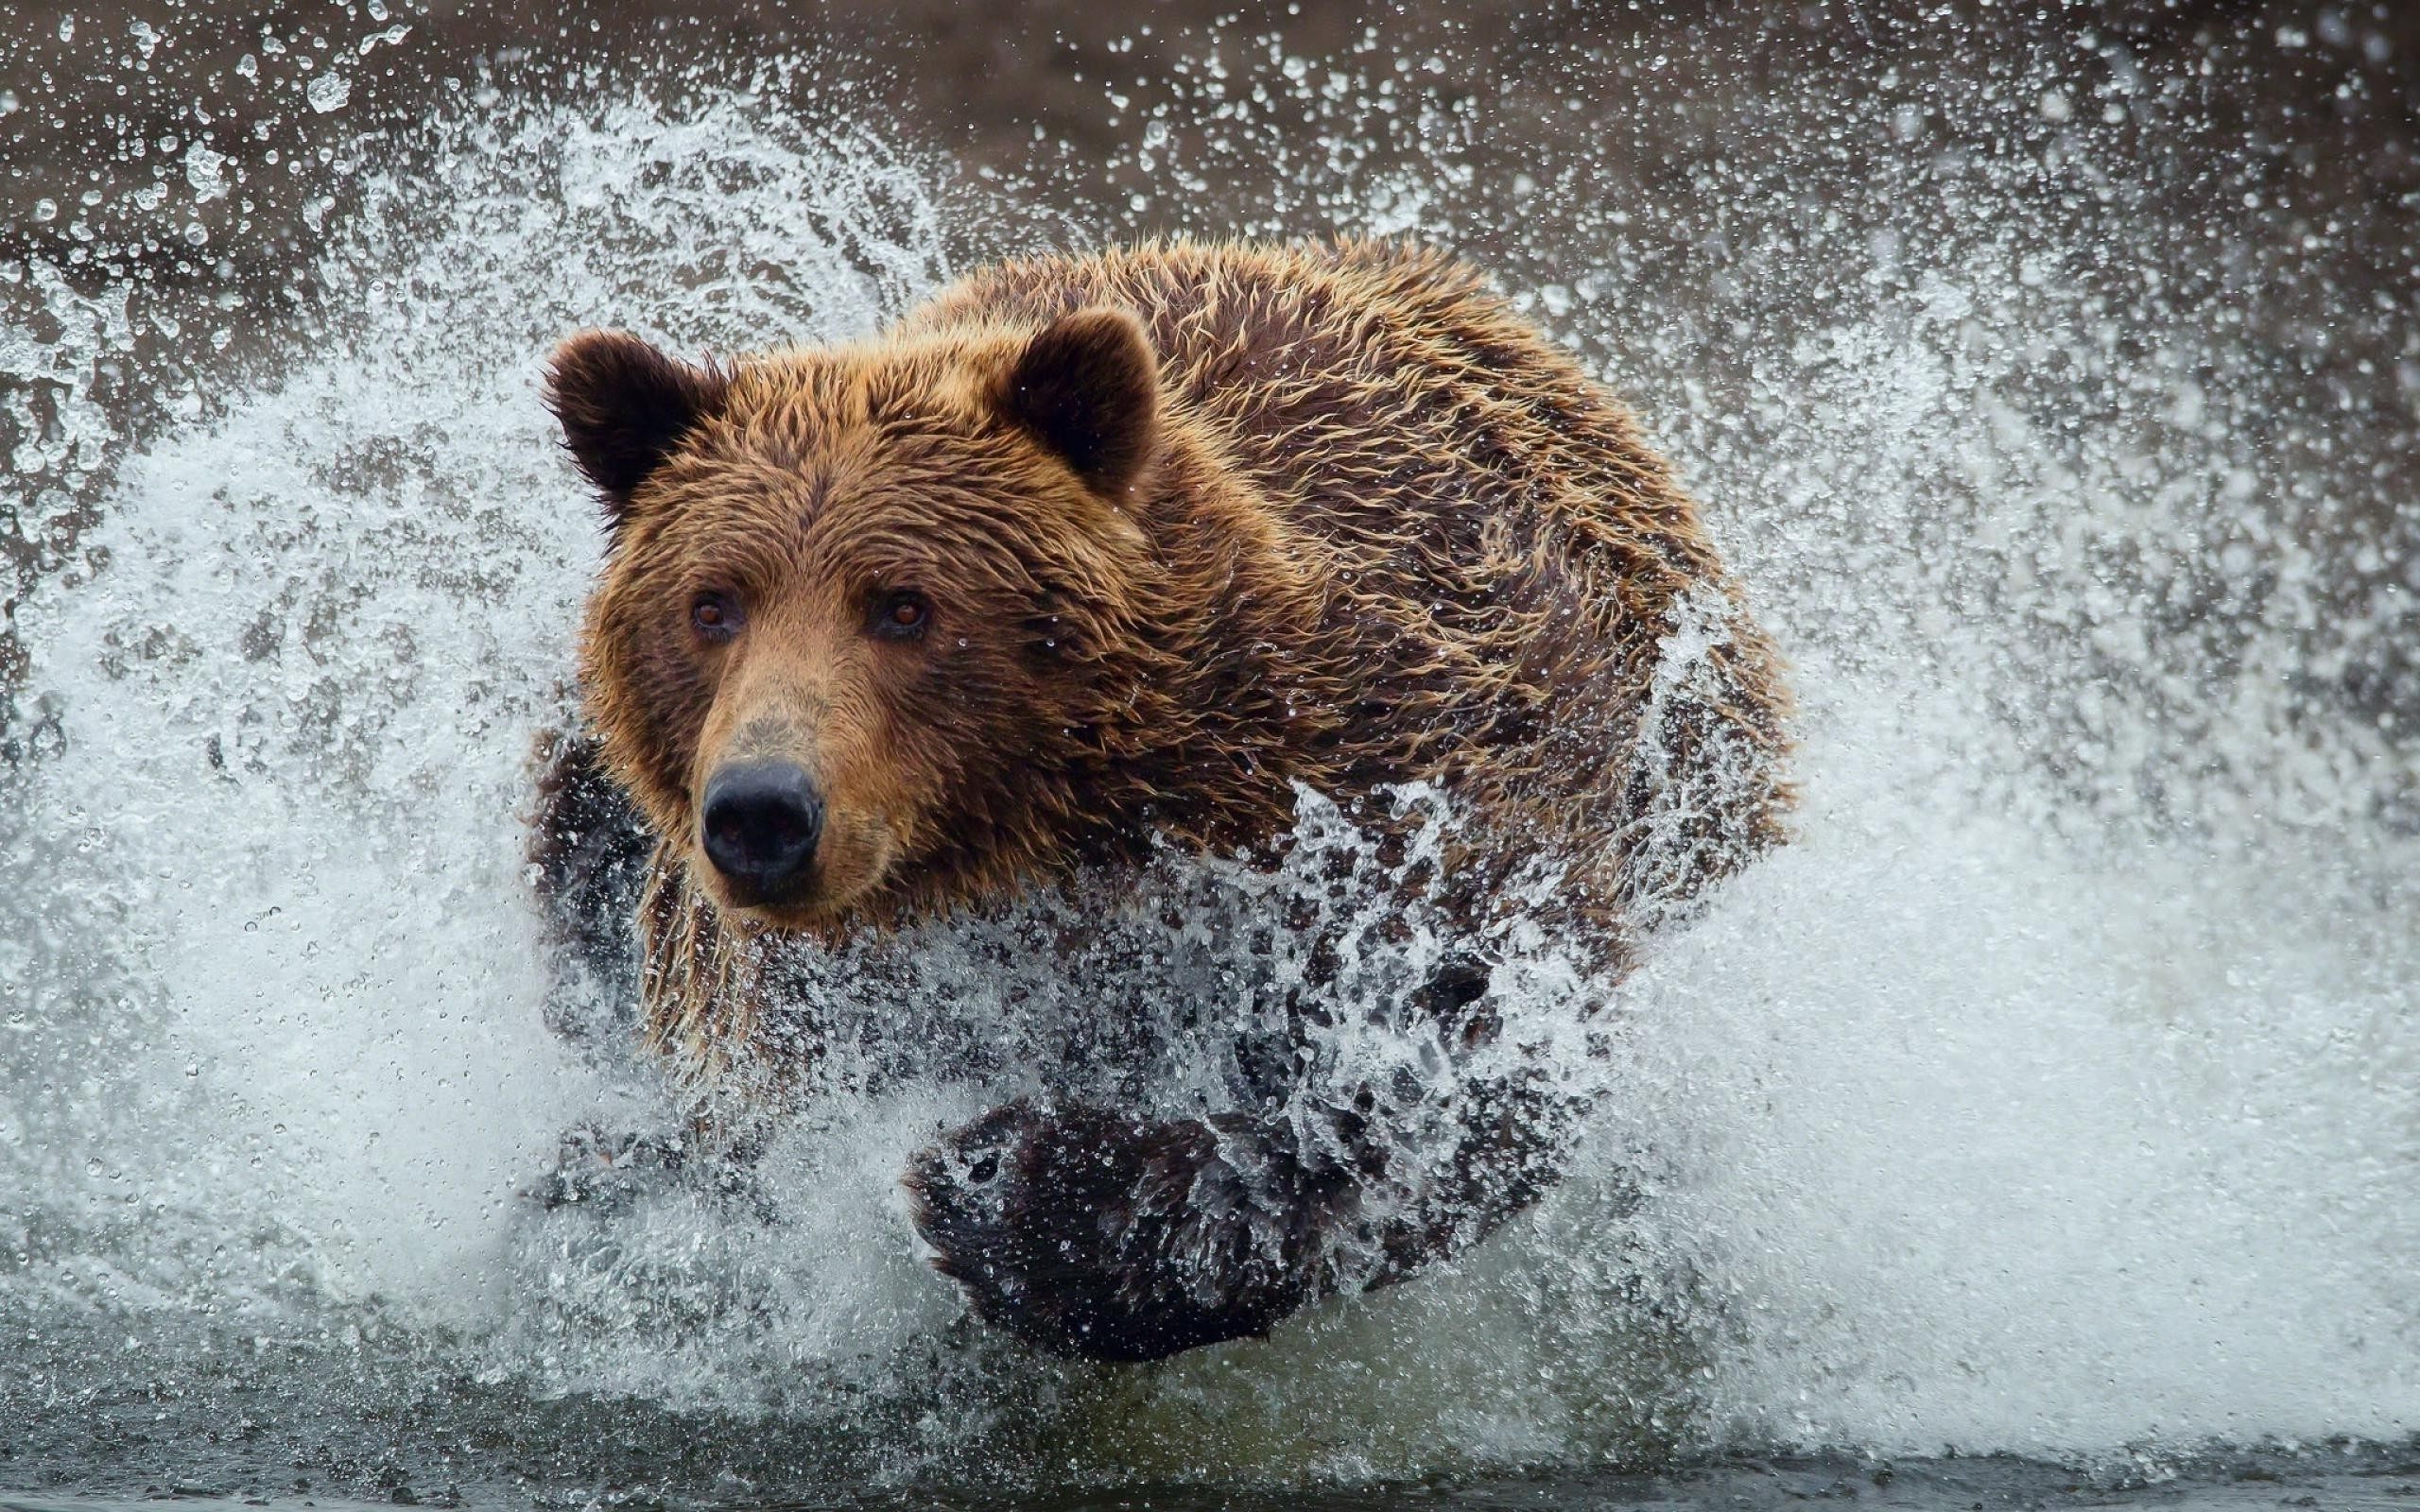 Water animals wet grizzly bears running bears wild animals (2560x1600)